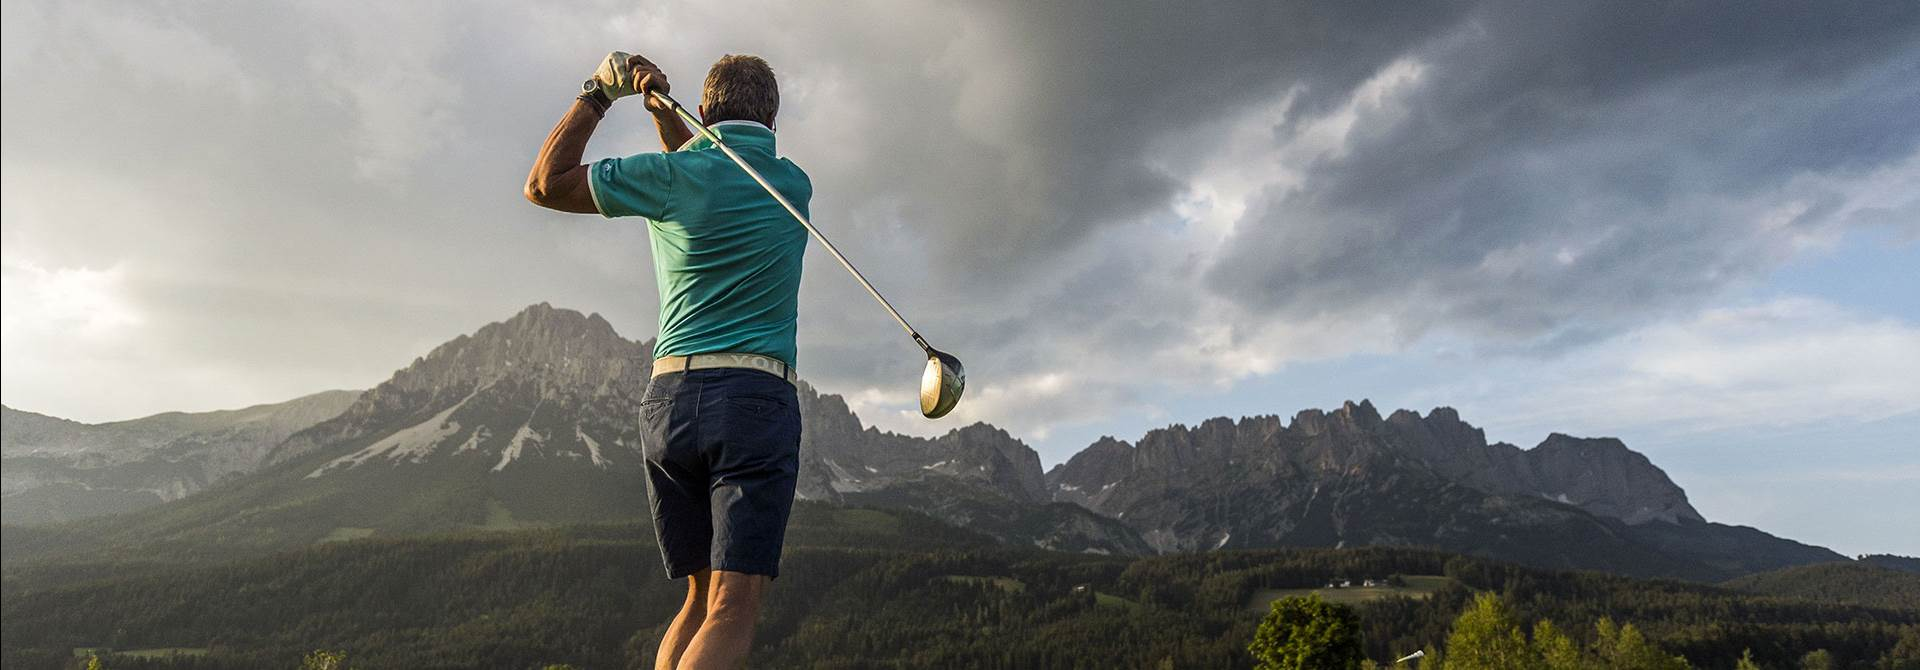 Golfer in front of a mountain panorama